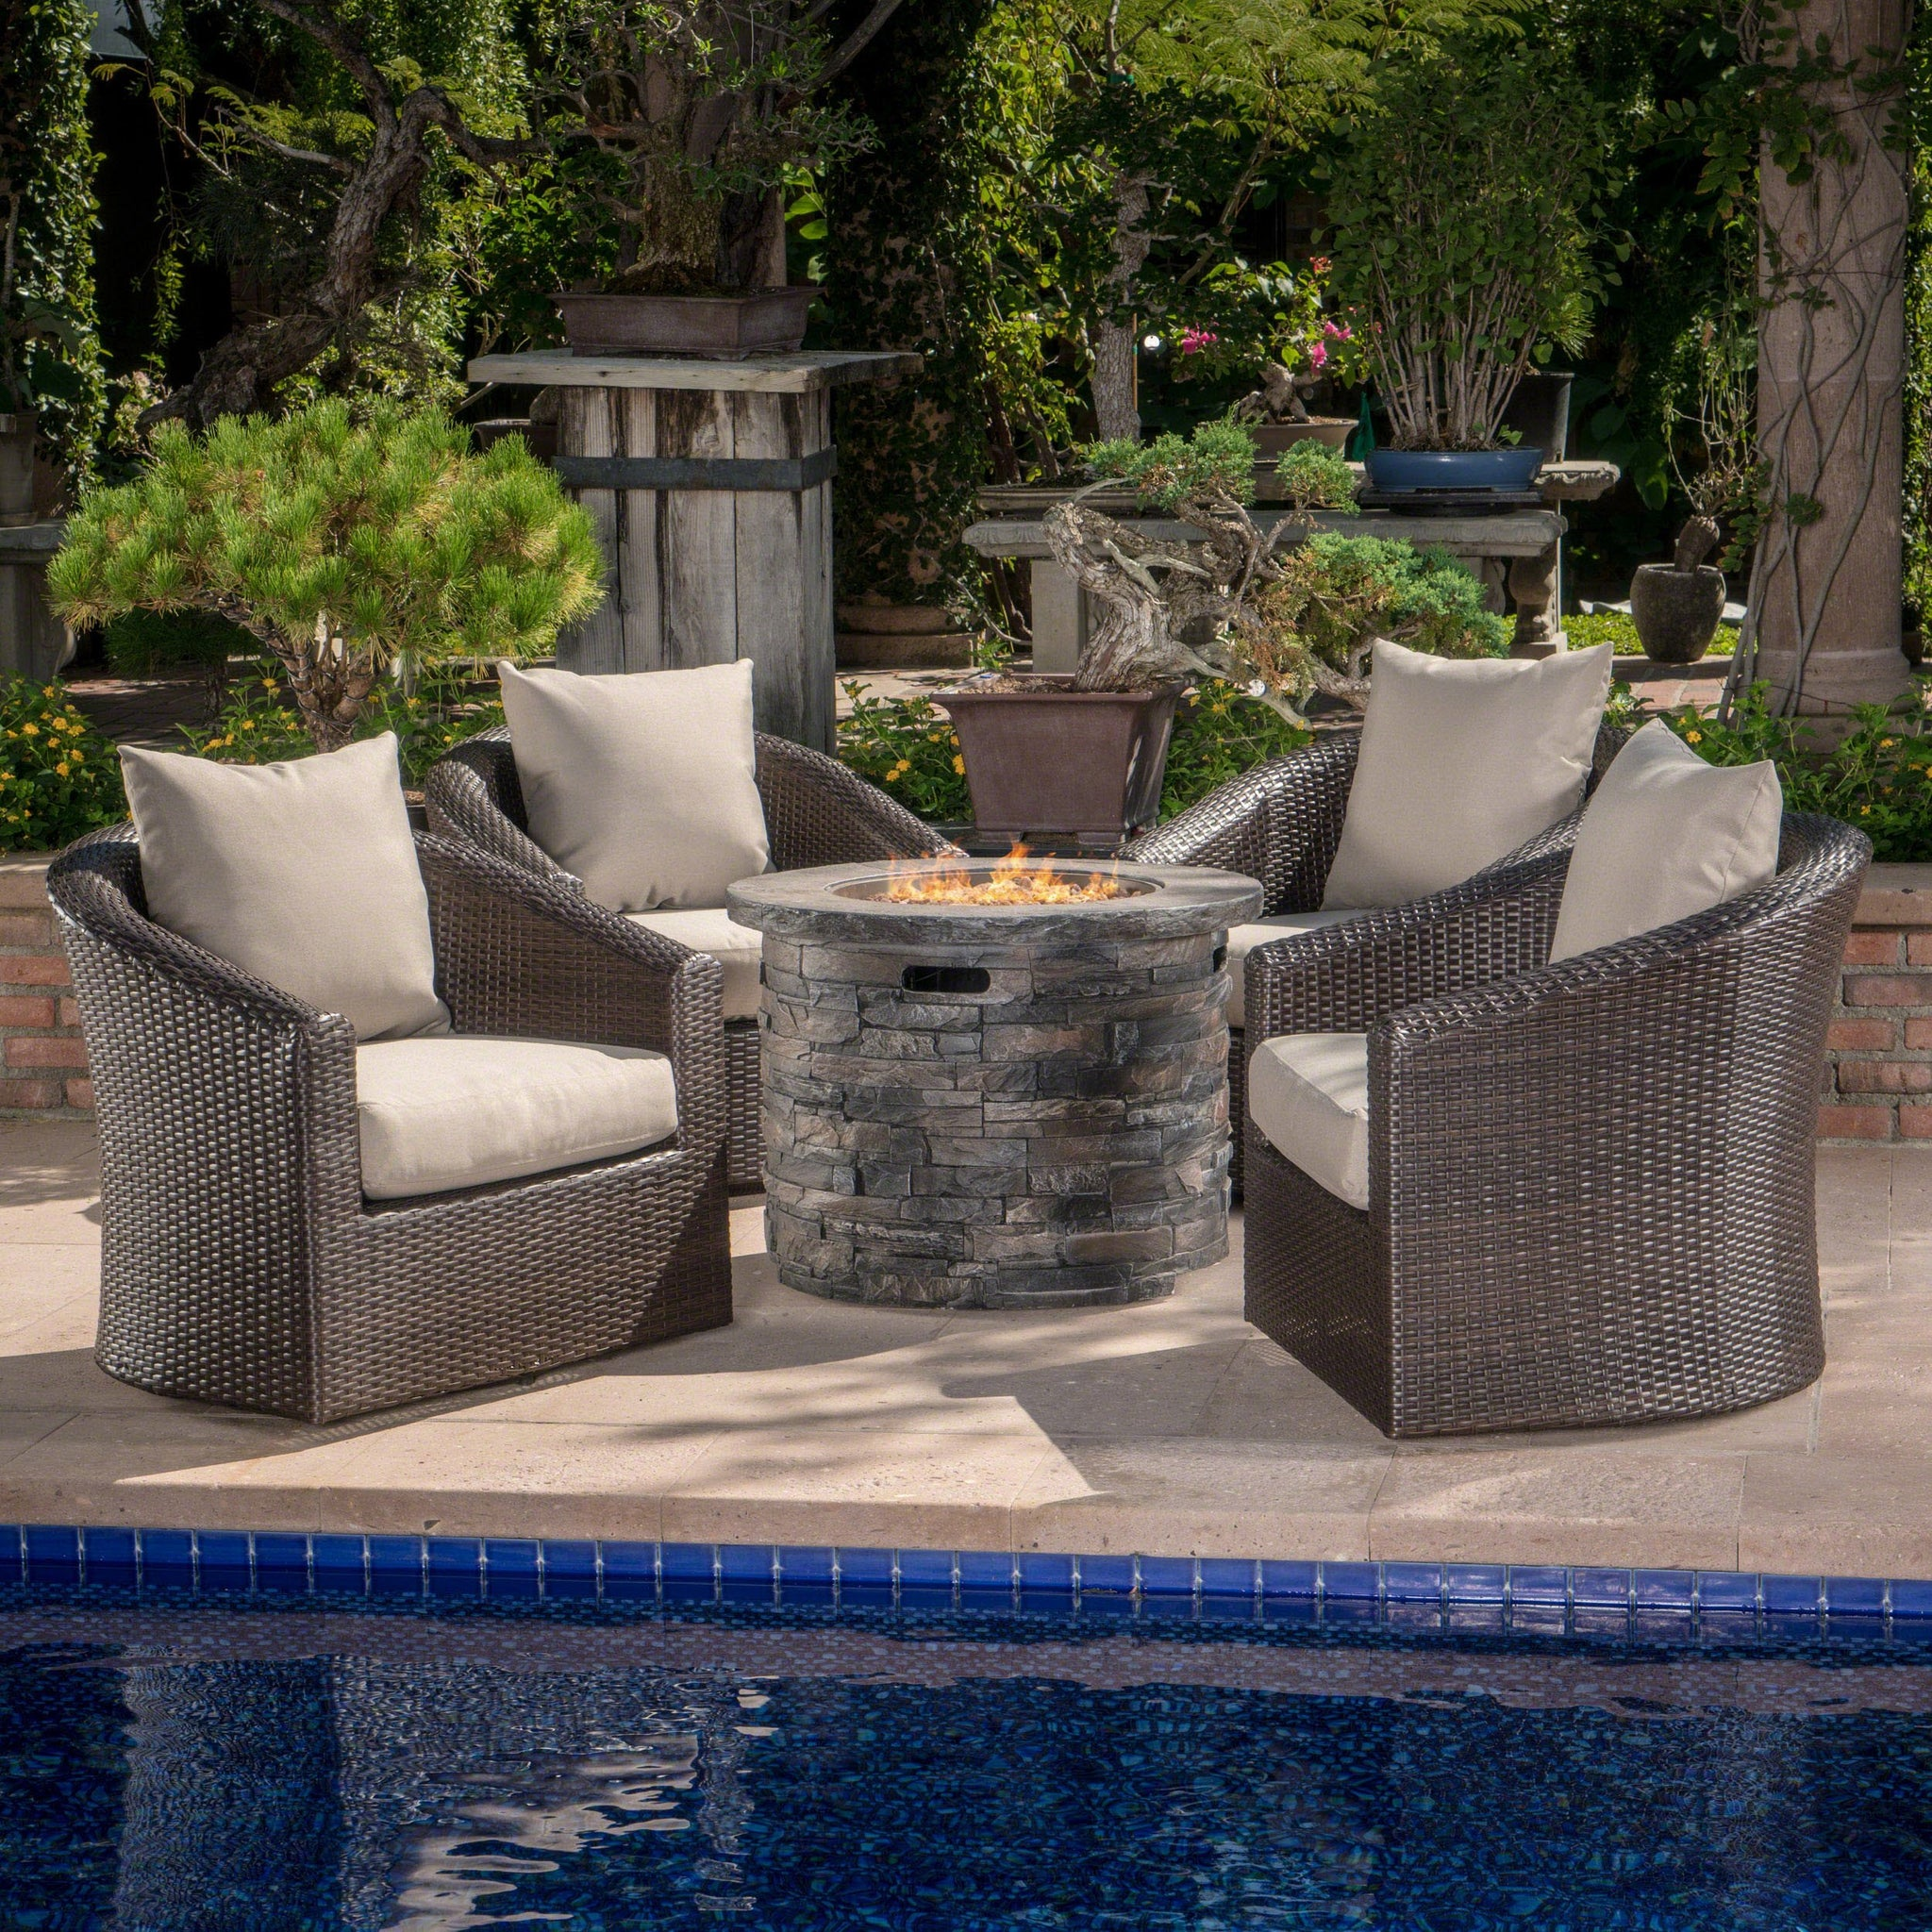 Groovy Glendale Outdoor 5 Piece Mixed Wicker Swivel Club Chair Set With Natural Stone Fire Pit And Mixed Water Resistant Cushions Evergreenethics Interior Chair Design Evergreenethicsorg